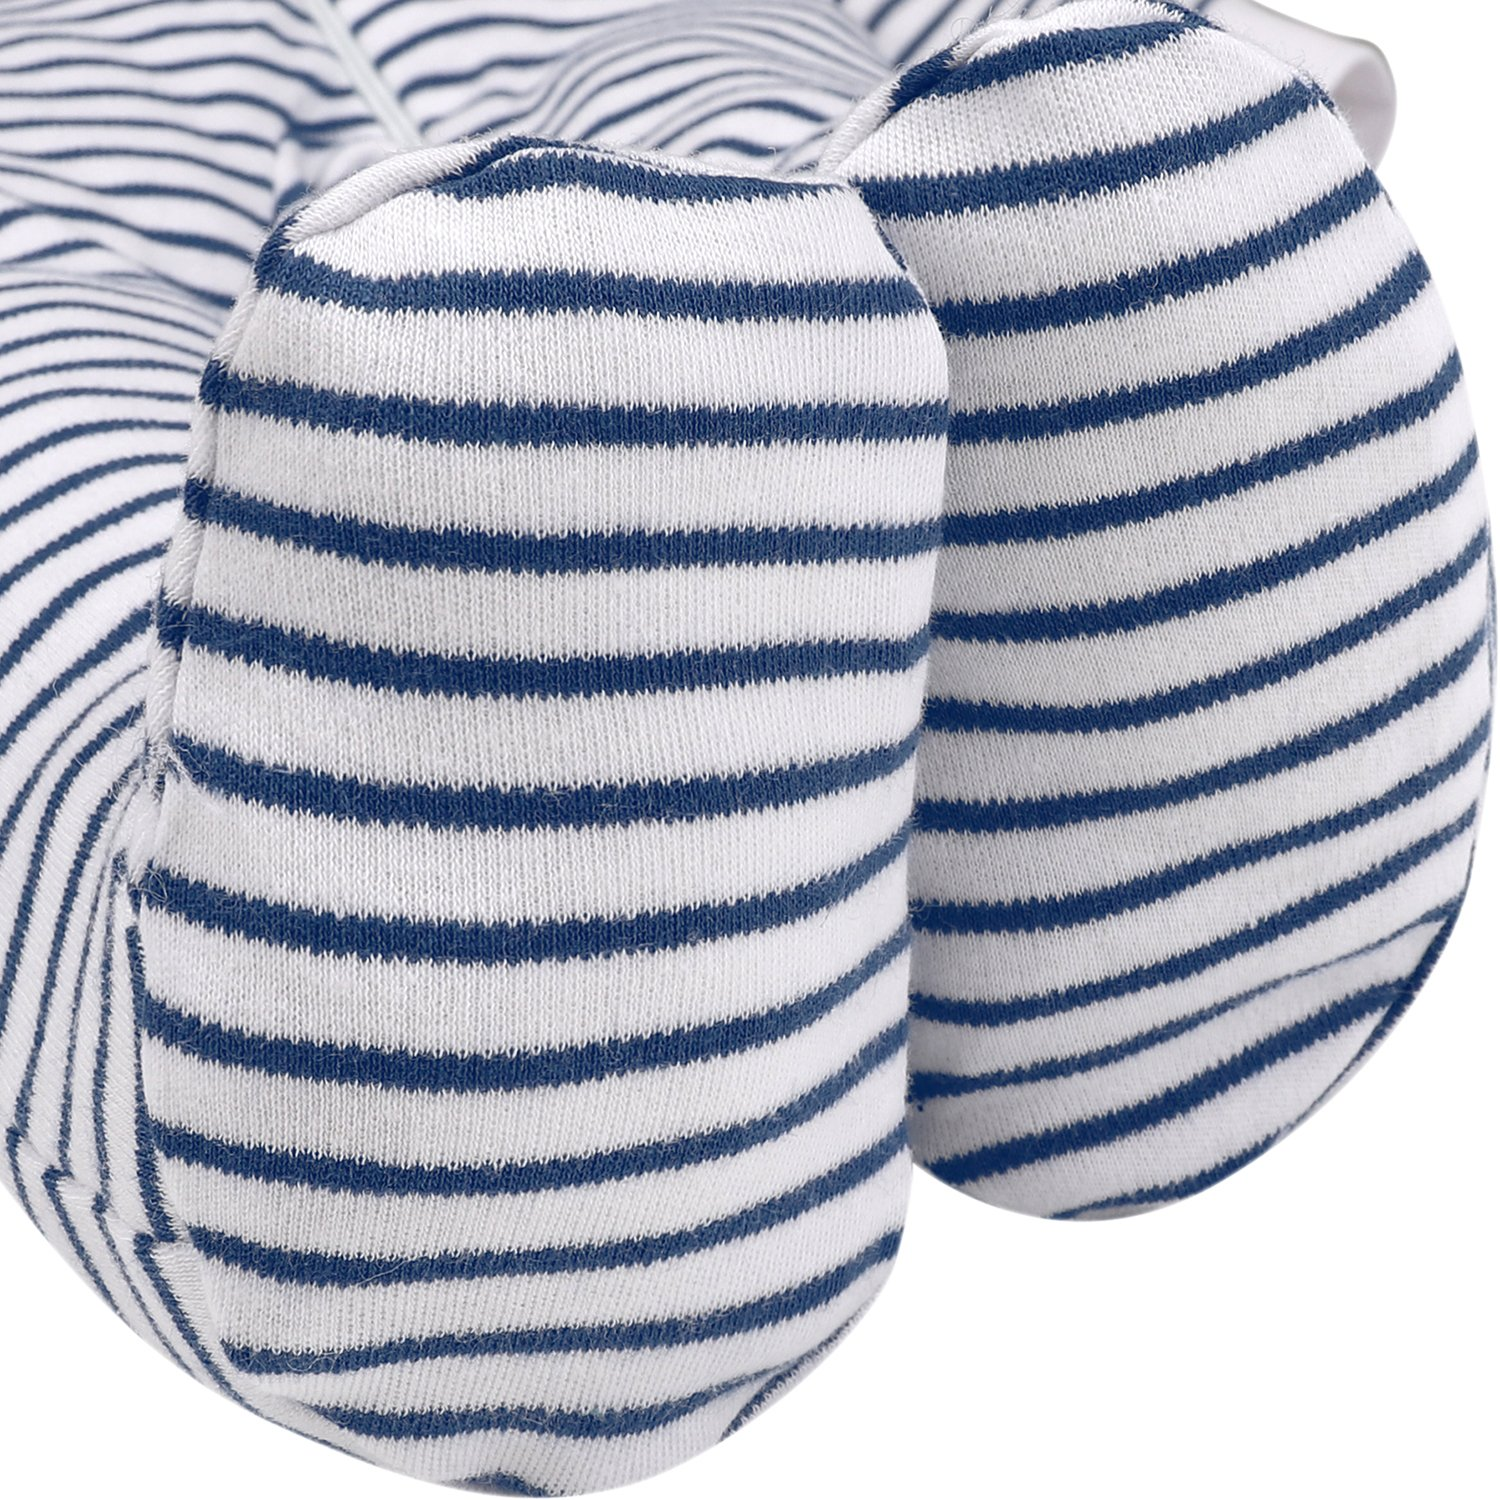 Baby Boys'2 Pack Footed Sleeper Yarn-Dyed Striped Baby Pajamas Set (Blue Dog/Grey Car, 18-24 Months) by SHENGWEN (Image #5)